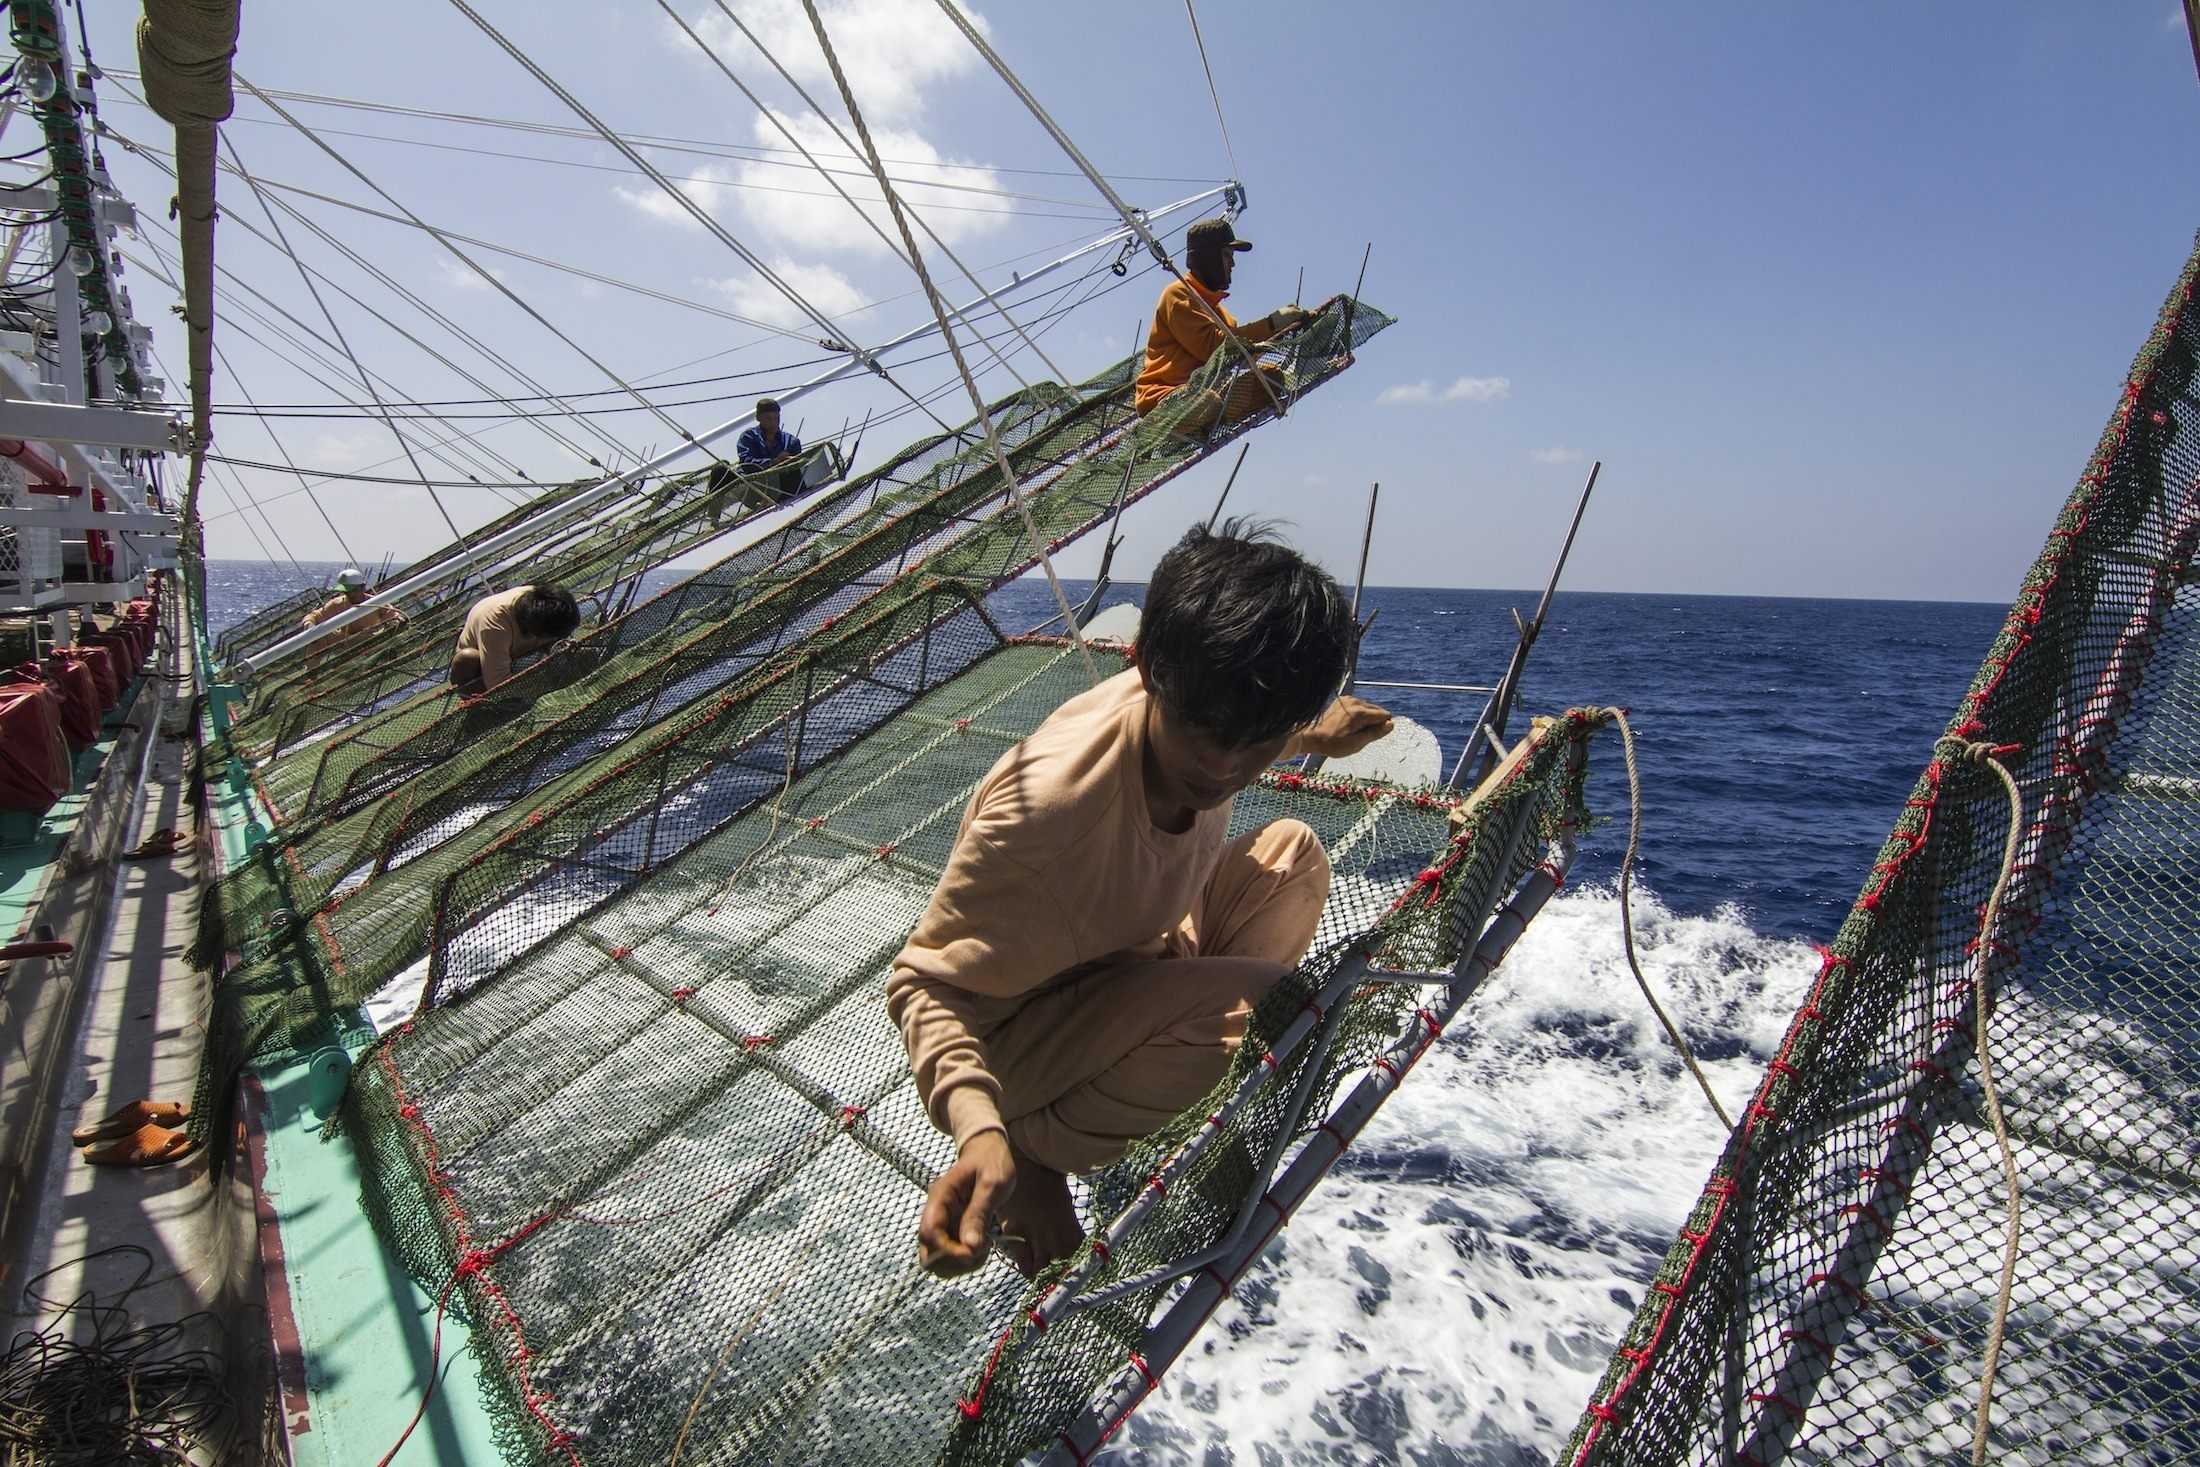 Documentary on Deep Sea Fishing Claims DOL Labor Film Award